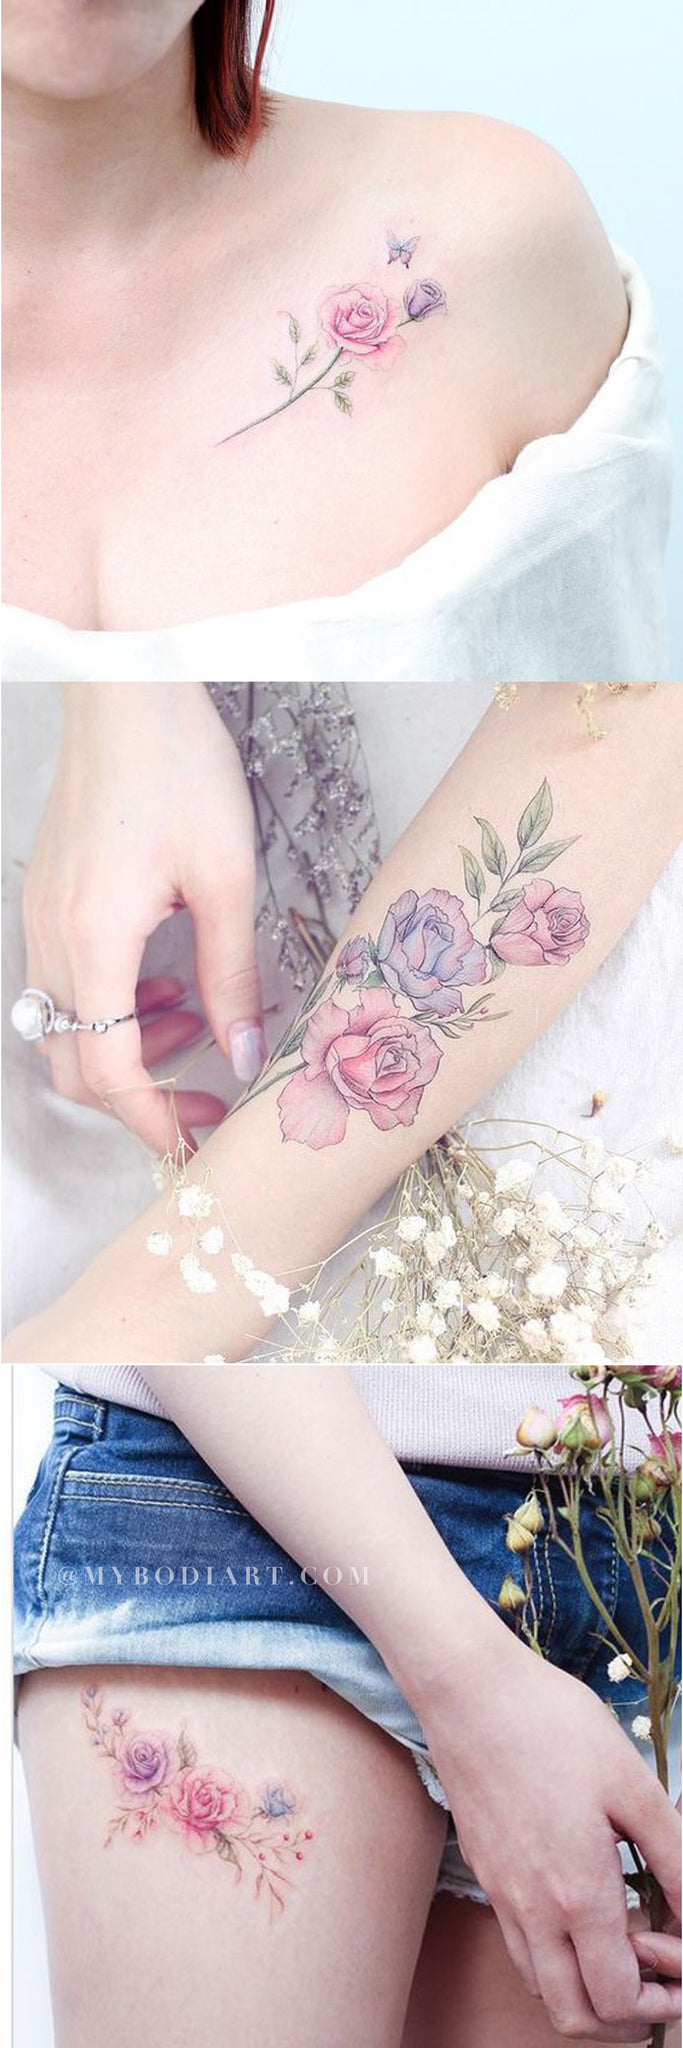 Delicate Watercolor Tattoo Ideas for Women Opal Floral Flower Pink Blue Shoulder Forearm Thigh Tattoos - www.MyBodiArt.com